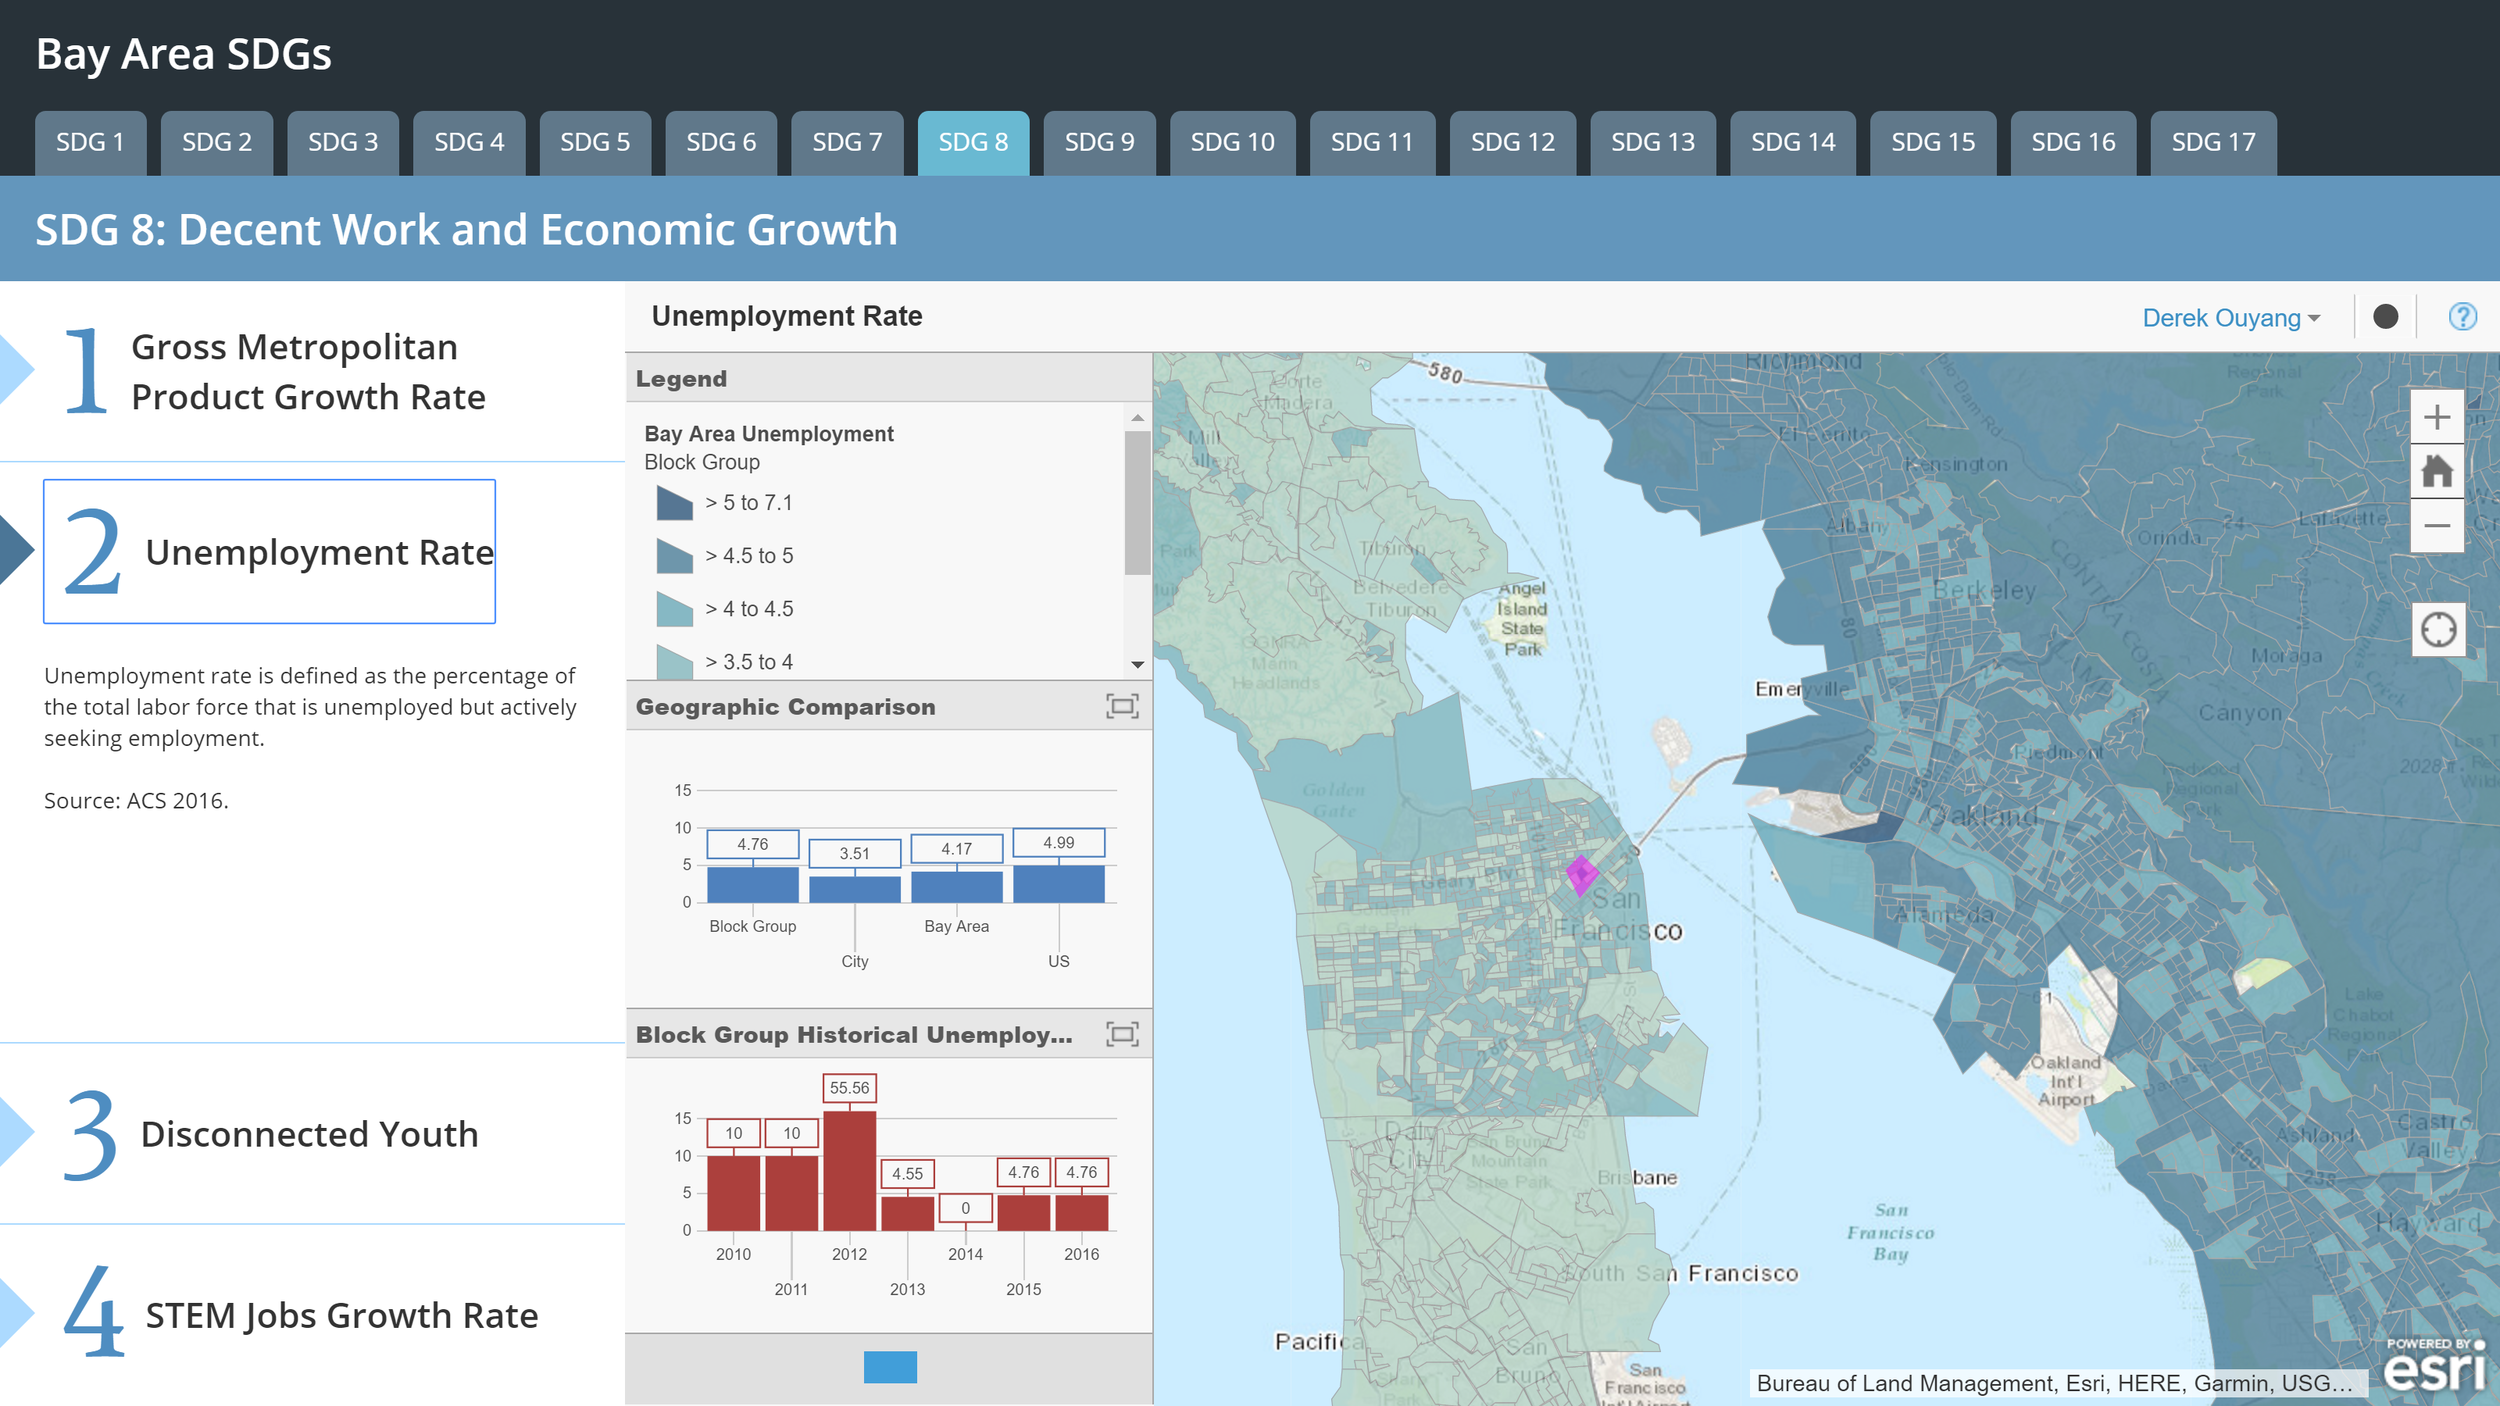 View Draft DashboardView the draft dashboard by clicking on the image below. Note that the only data views available at this time are SDG 8 > Unemployment Rate and SDG 13 > Carbon Emissions.